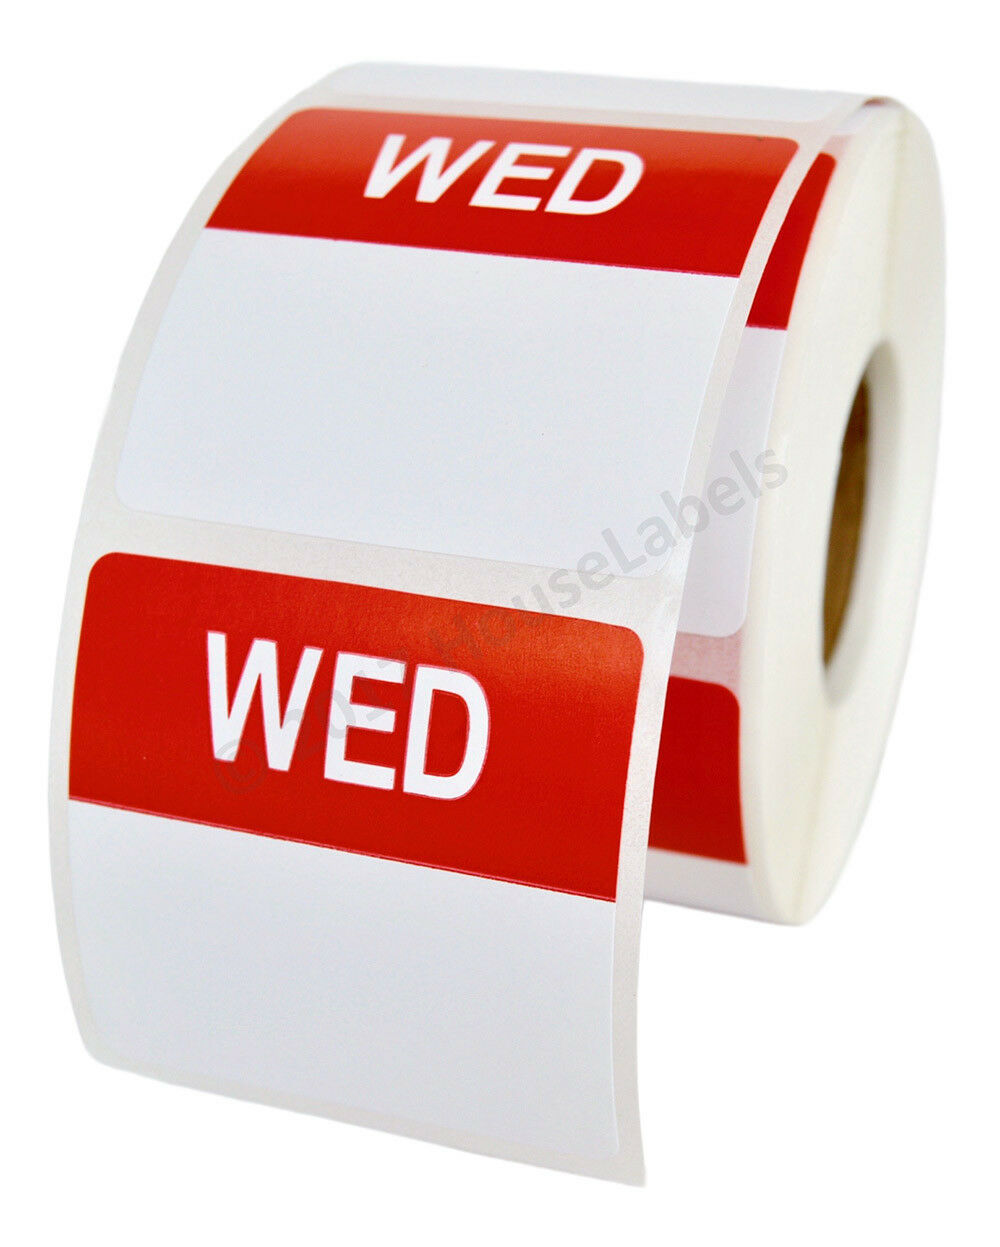 36 Rolls of Wednesday Day of the Week Labels (500 lbls roll, 40mmx40mm) BPA Free